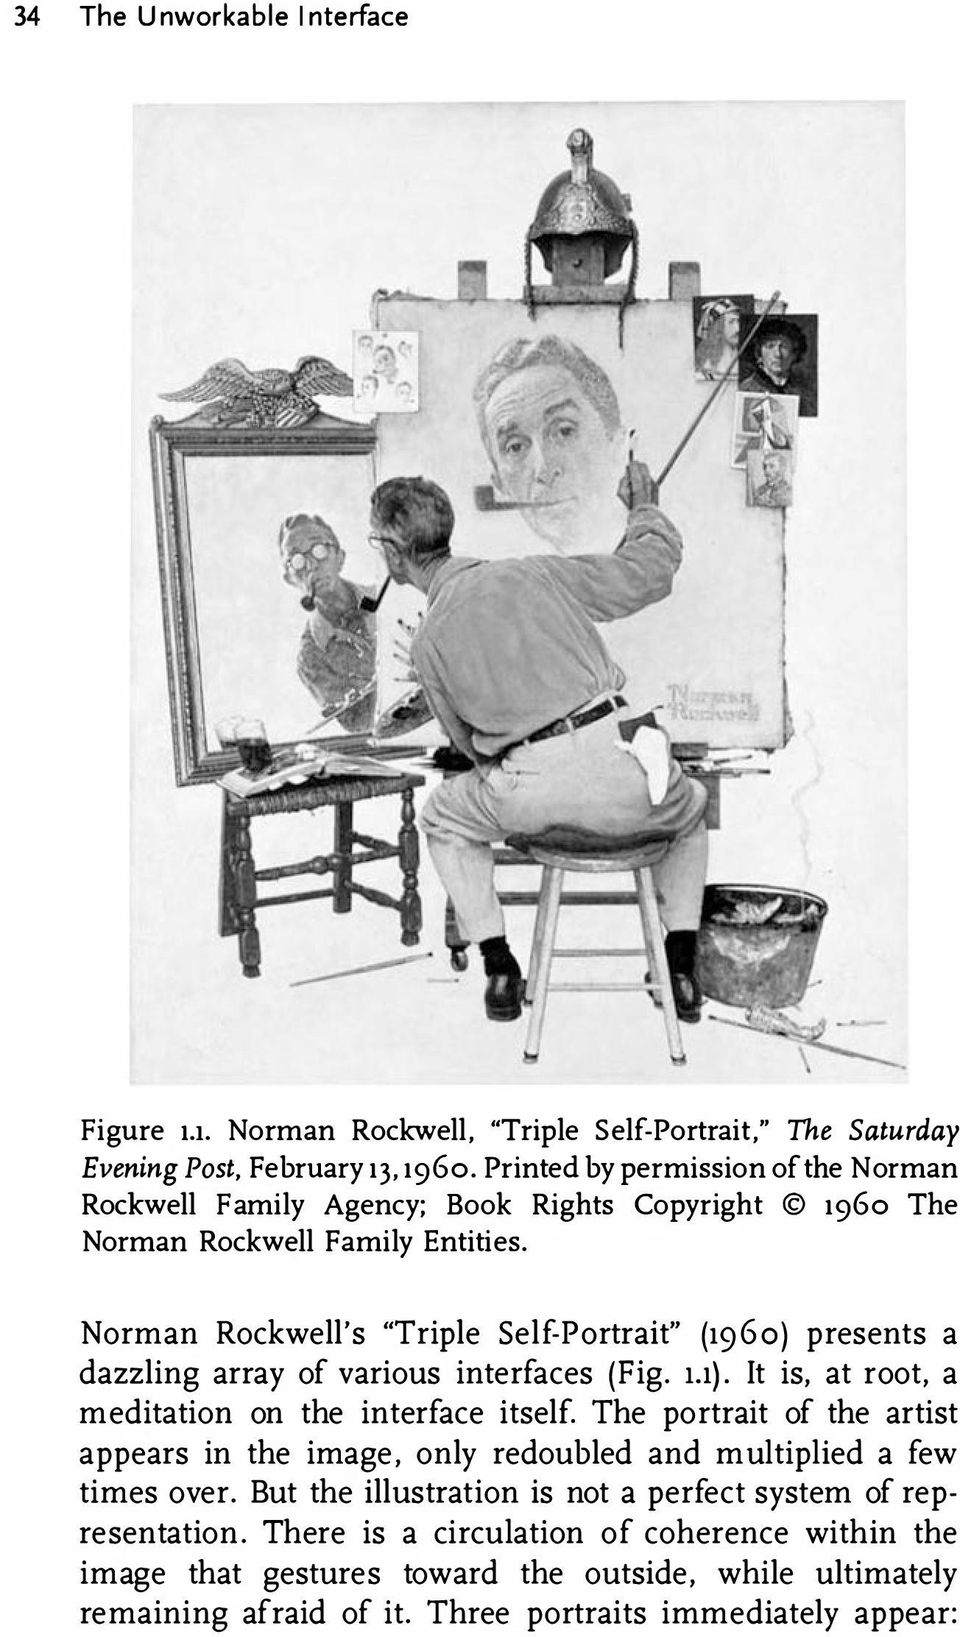 "Norman Rockwell's ""Triple Self-Portrait"" (1960) presents a dazzling array of various interfaces (Fig. u). It is, at root, a meditation on the interface itself."